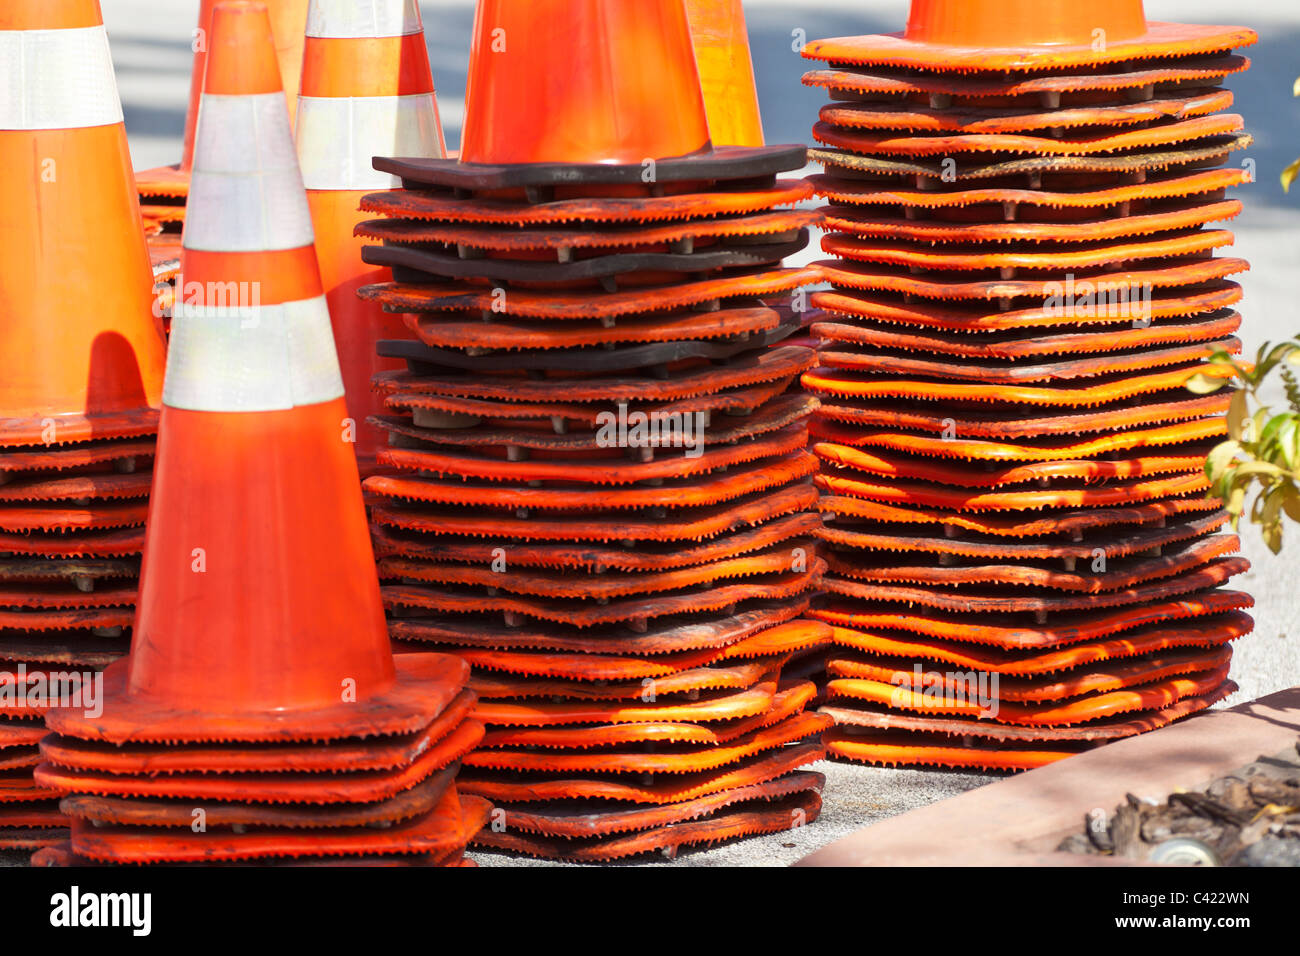 Stack of traffic cones in Florida, USA - Stock Image